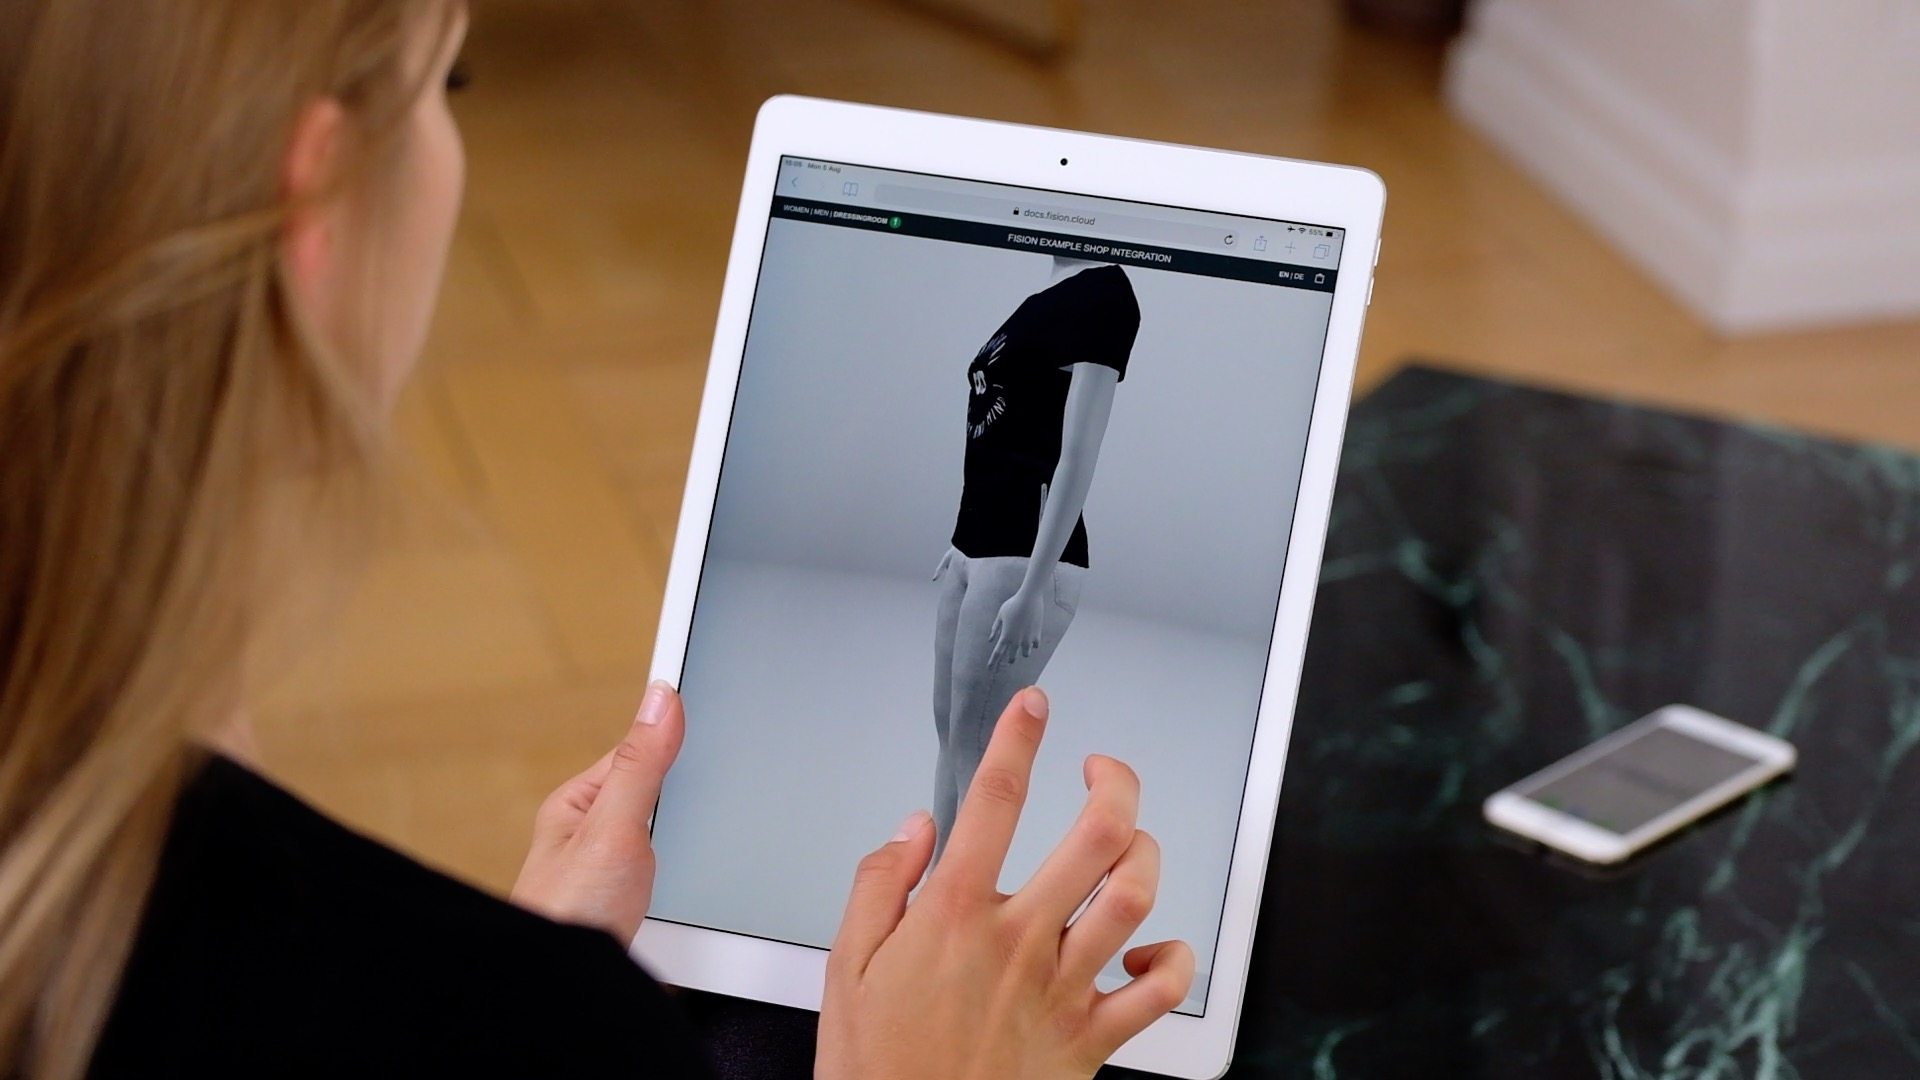 Virtual Dressing Room With Personal 3d Body Avatar Fision